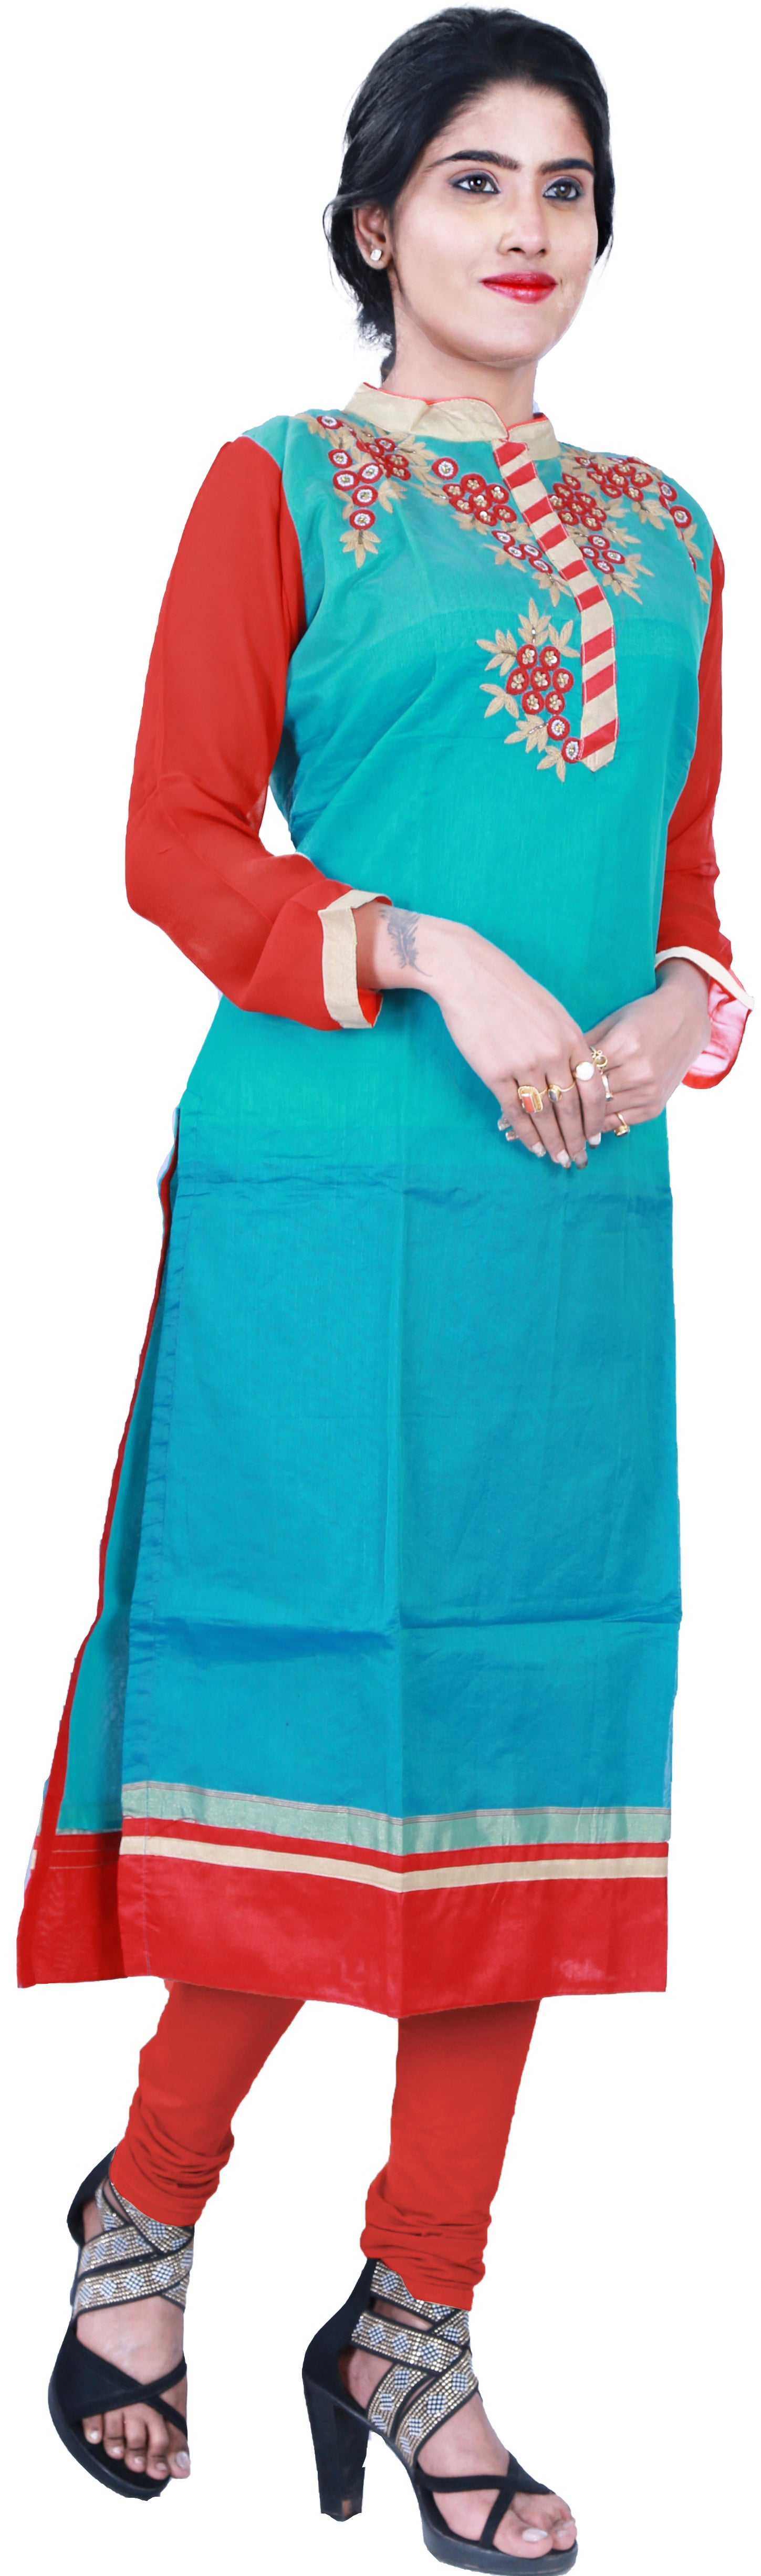 SMSAREE Turquoise & Red Designer Casual Partywear Cotton (Chanderi) & Georgette Viscos Sleeves Thread Cutdana Sequence & Beads Hand Embroidery Work Stylish Women Kurti Kurta With Free Matching Leggings D370